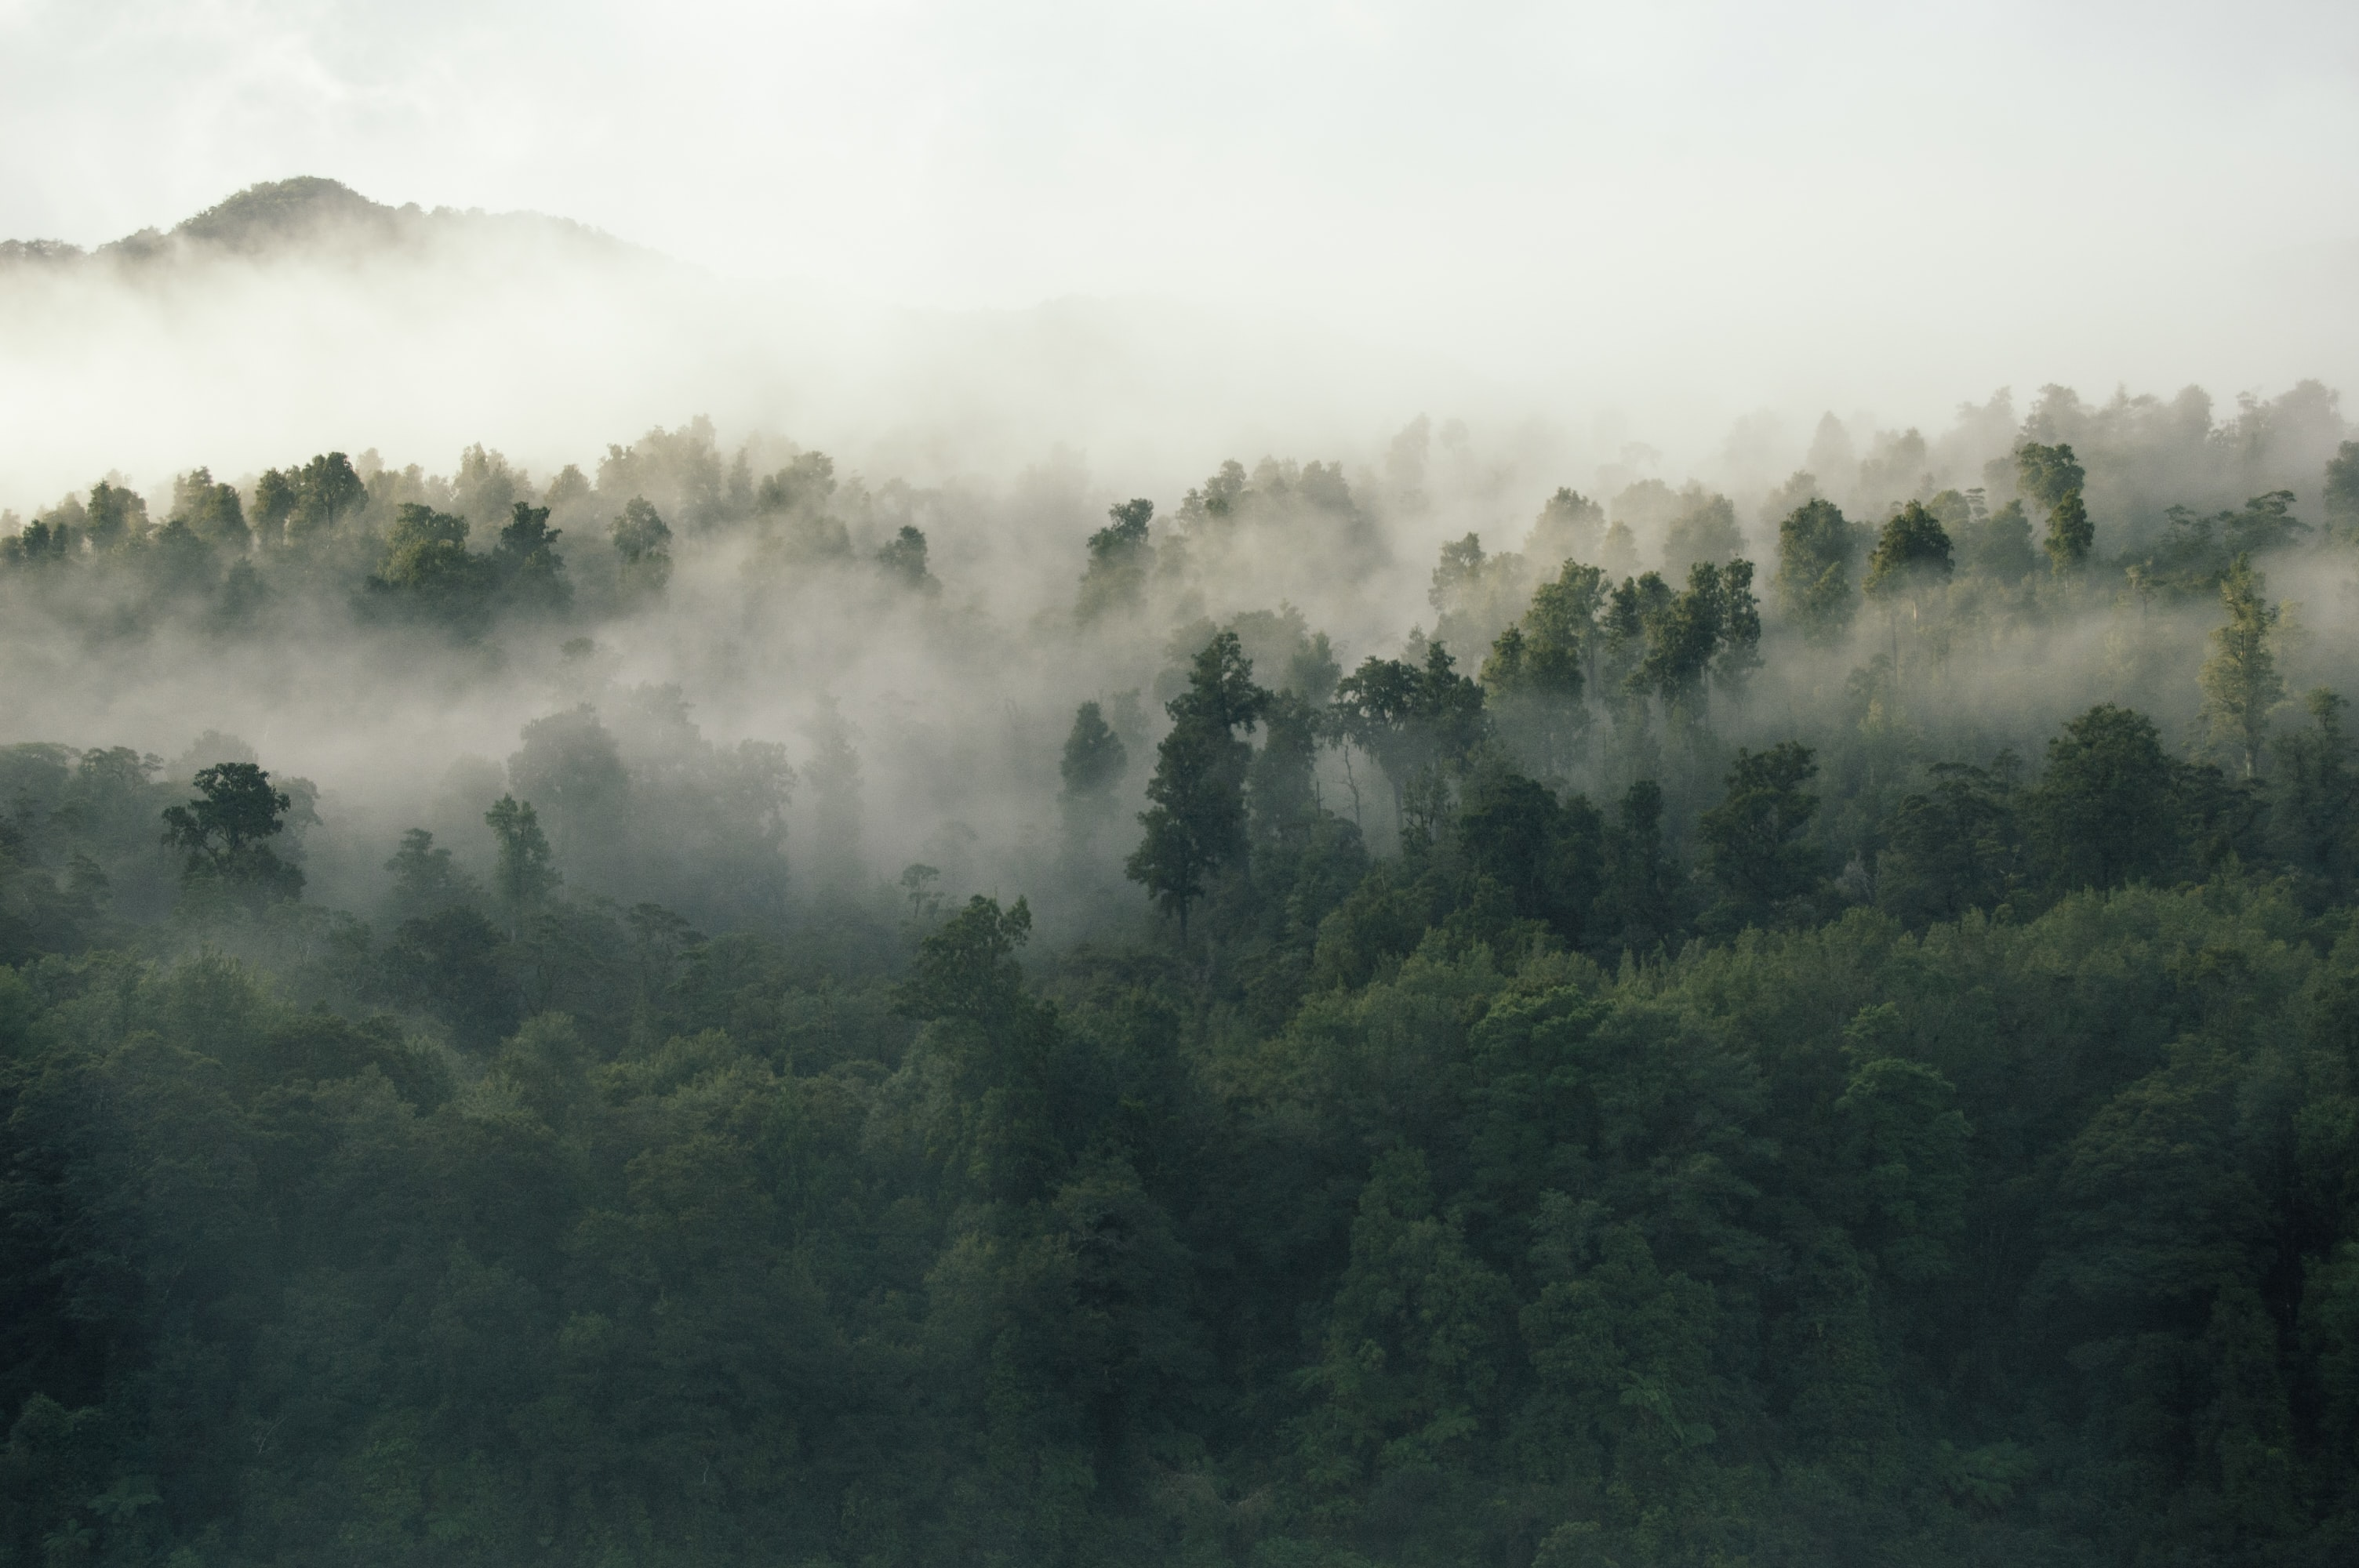 A green forest in New Zealand shrouded in dense fog